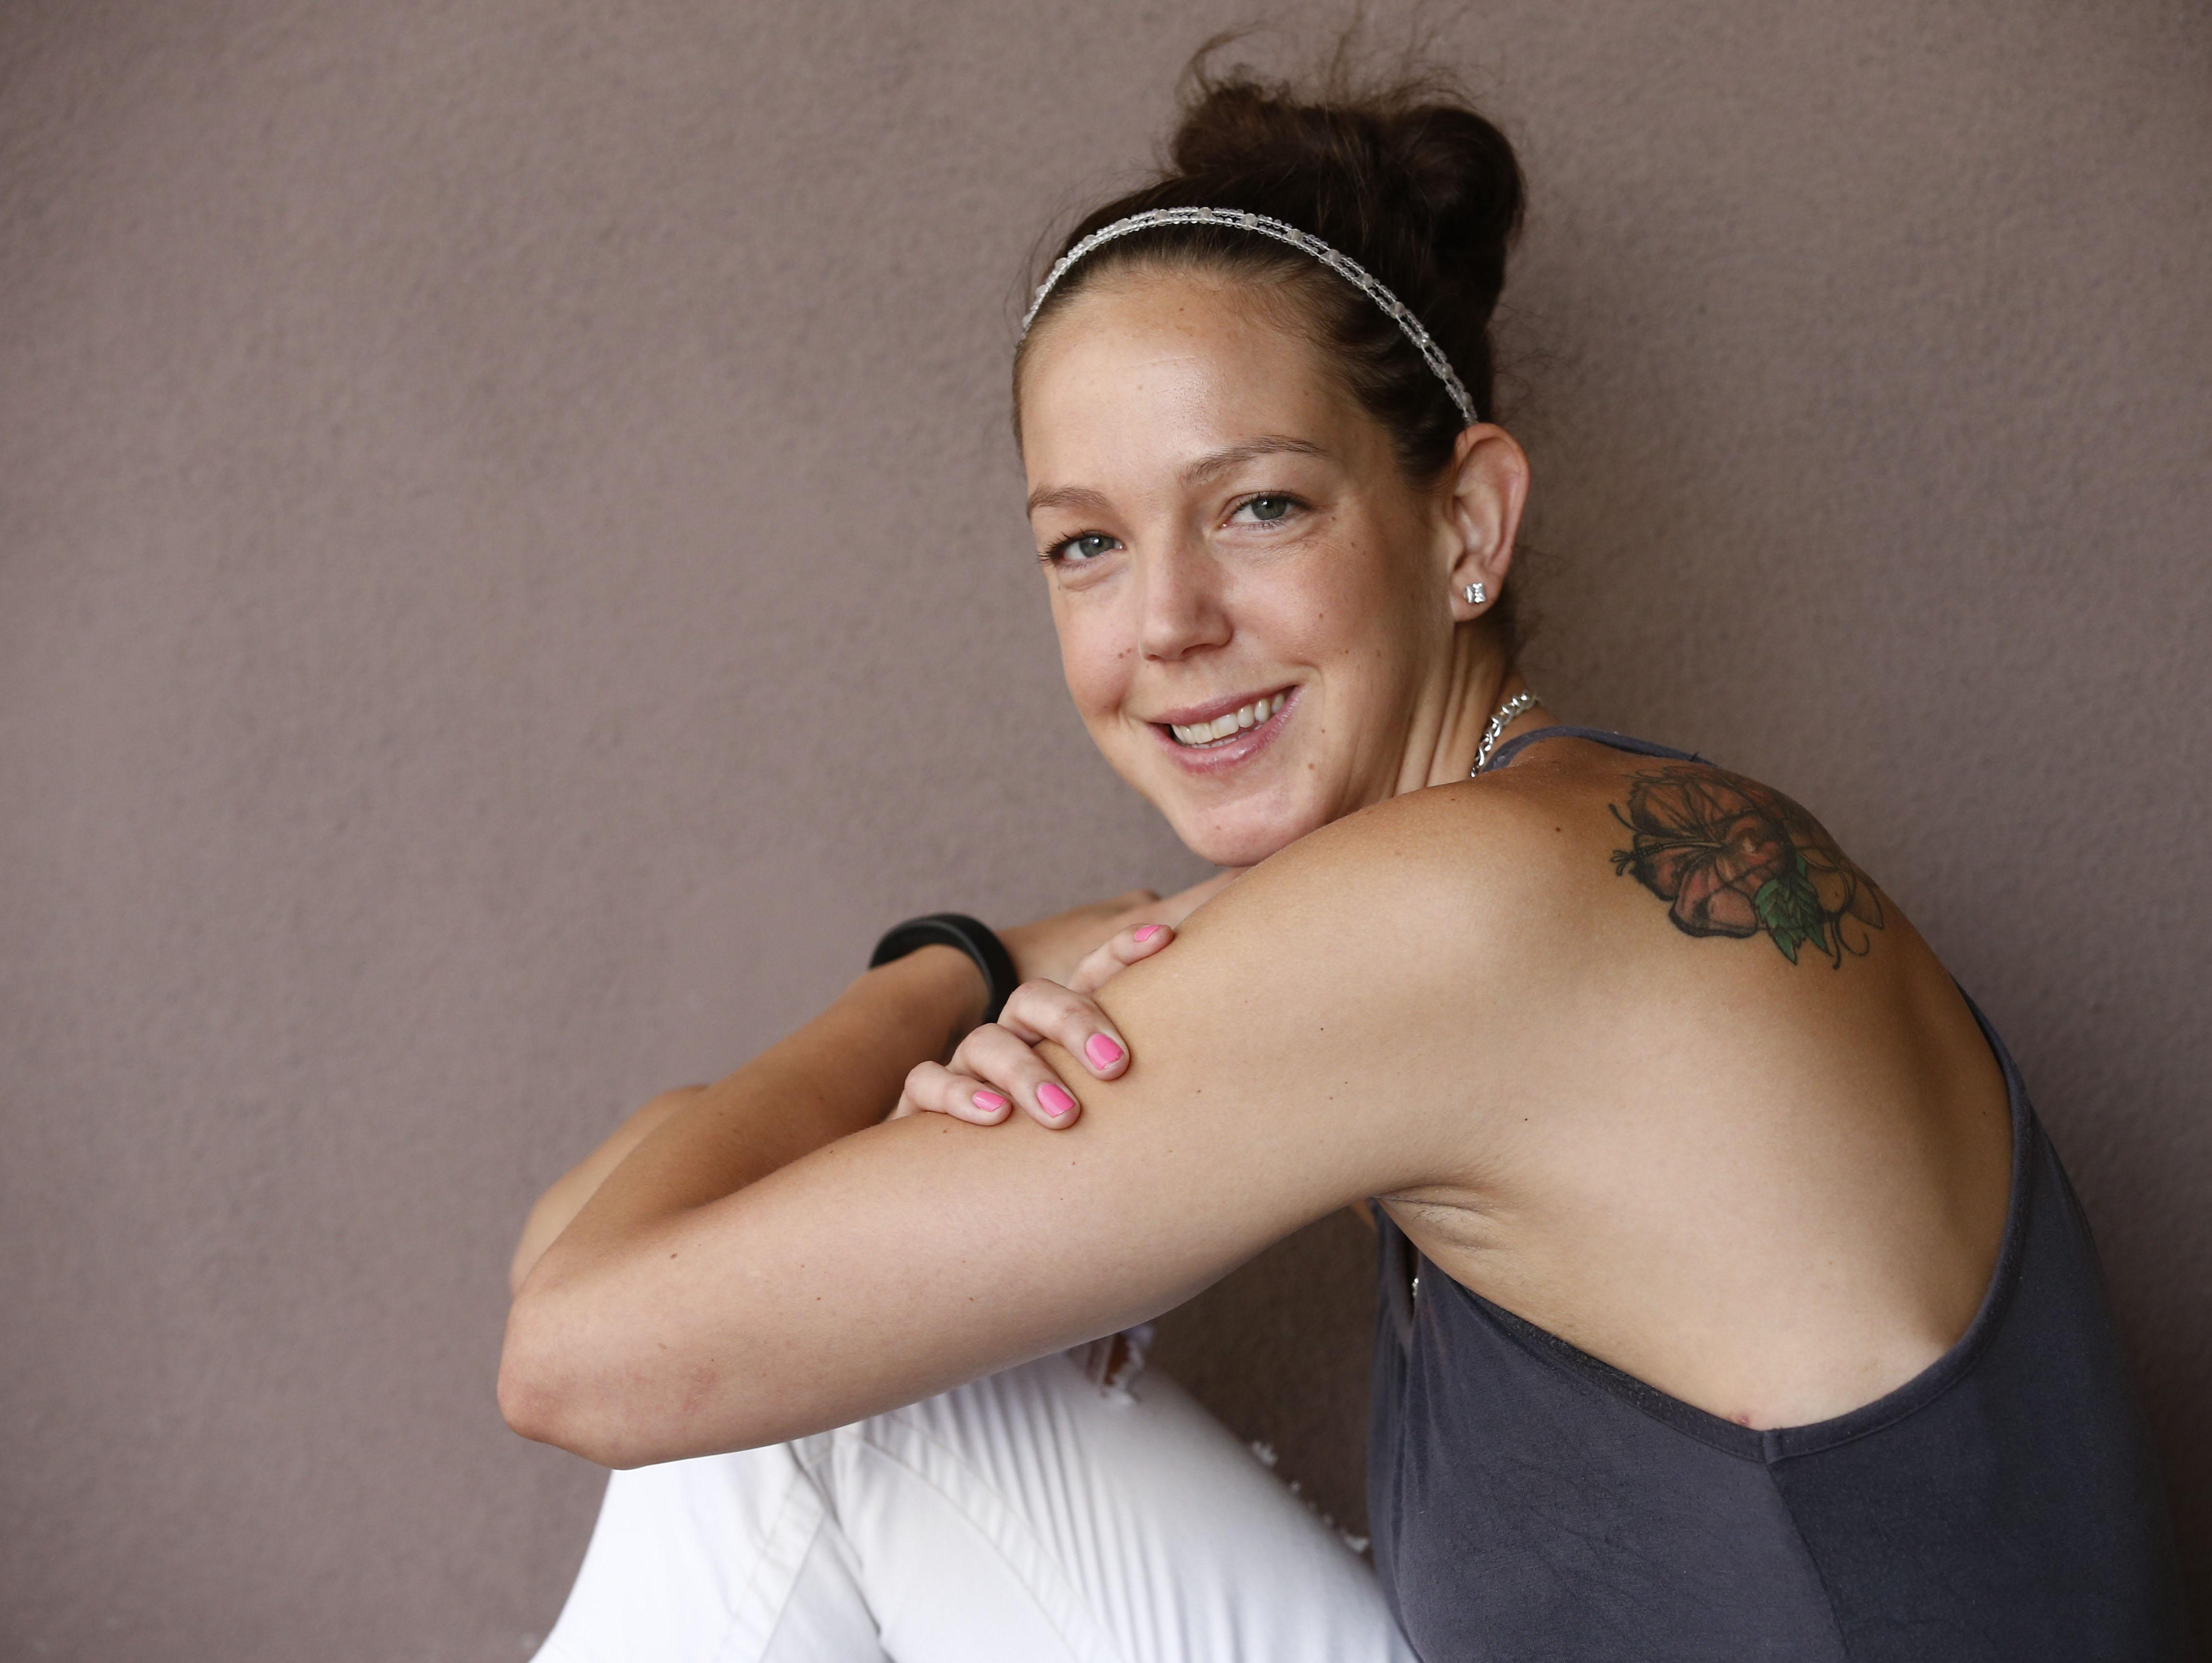 Former ASU women's basketball player and Glendale native Becca Tobin is recovering after collapsing during the Phoenix Mercury's preseason.